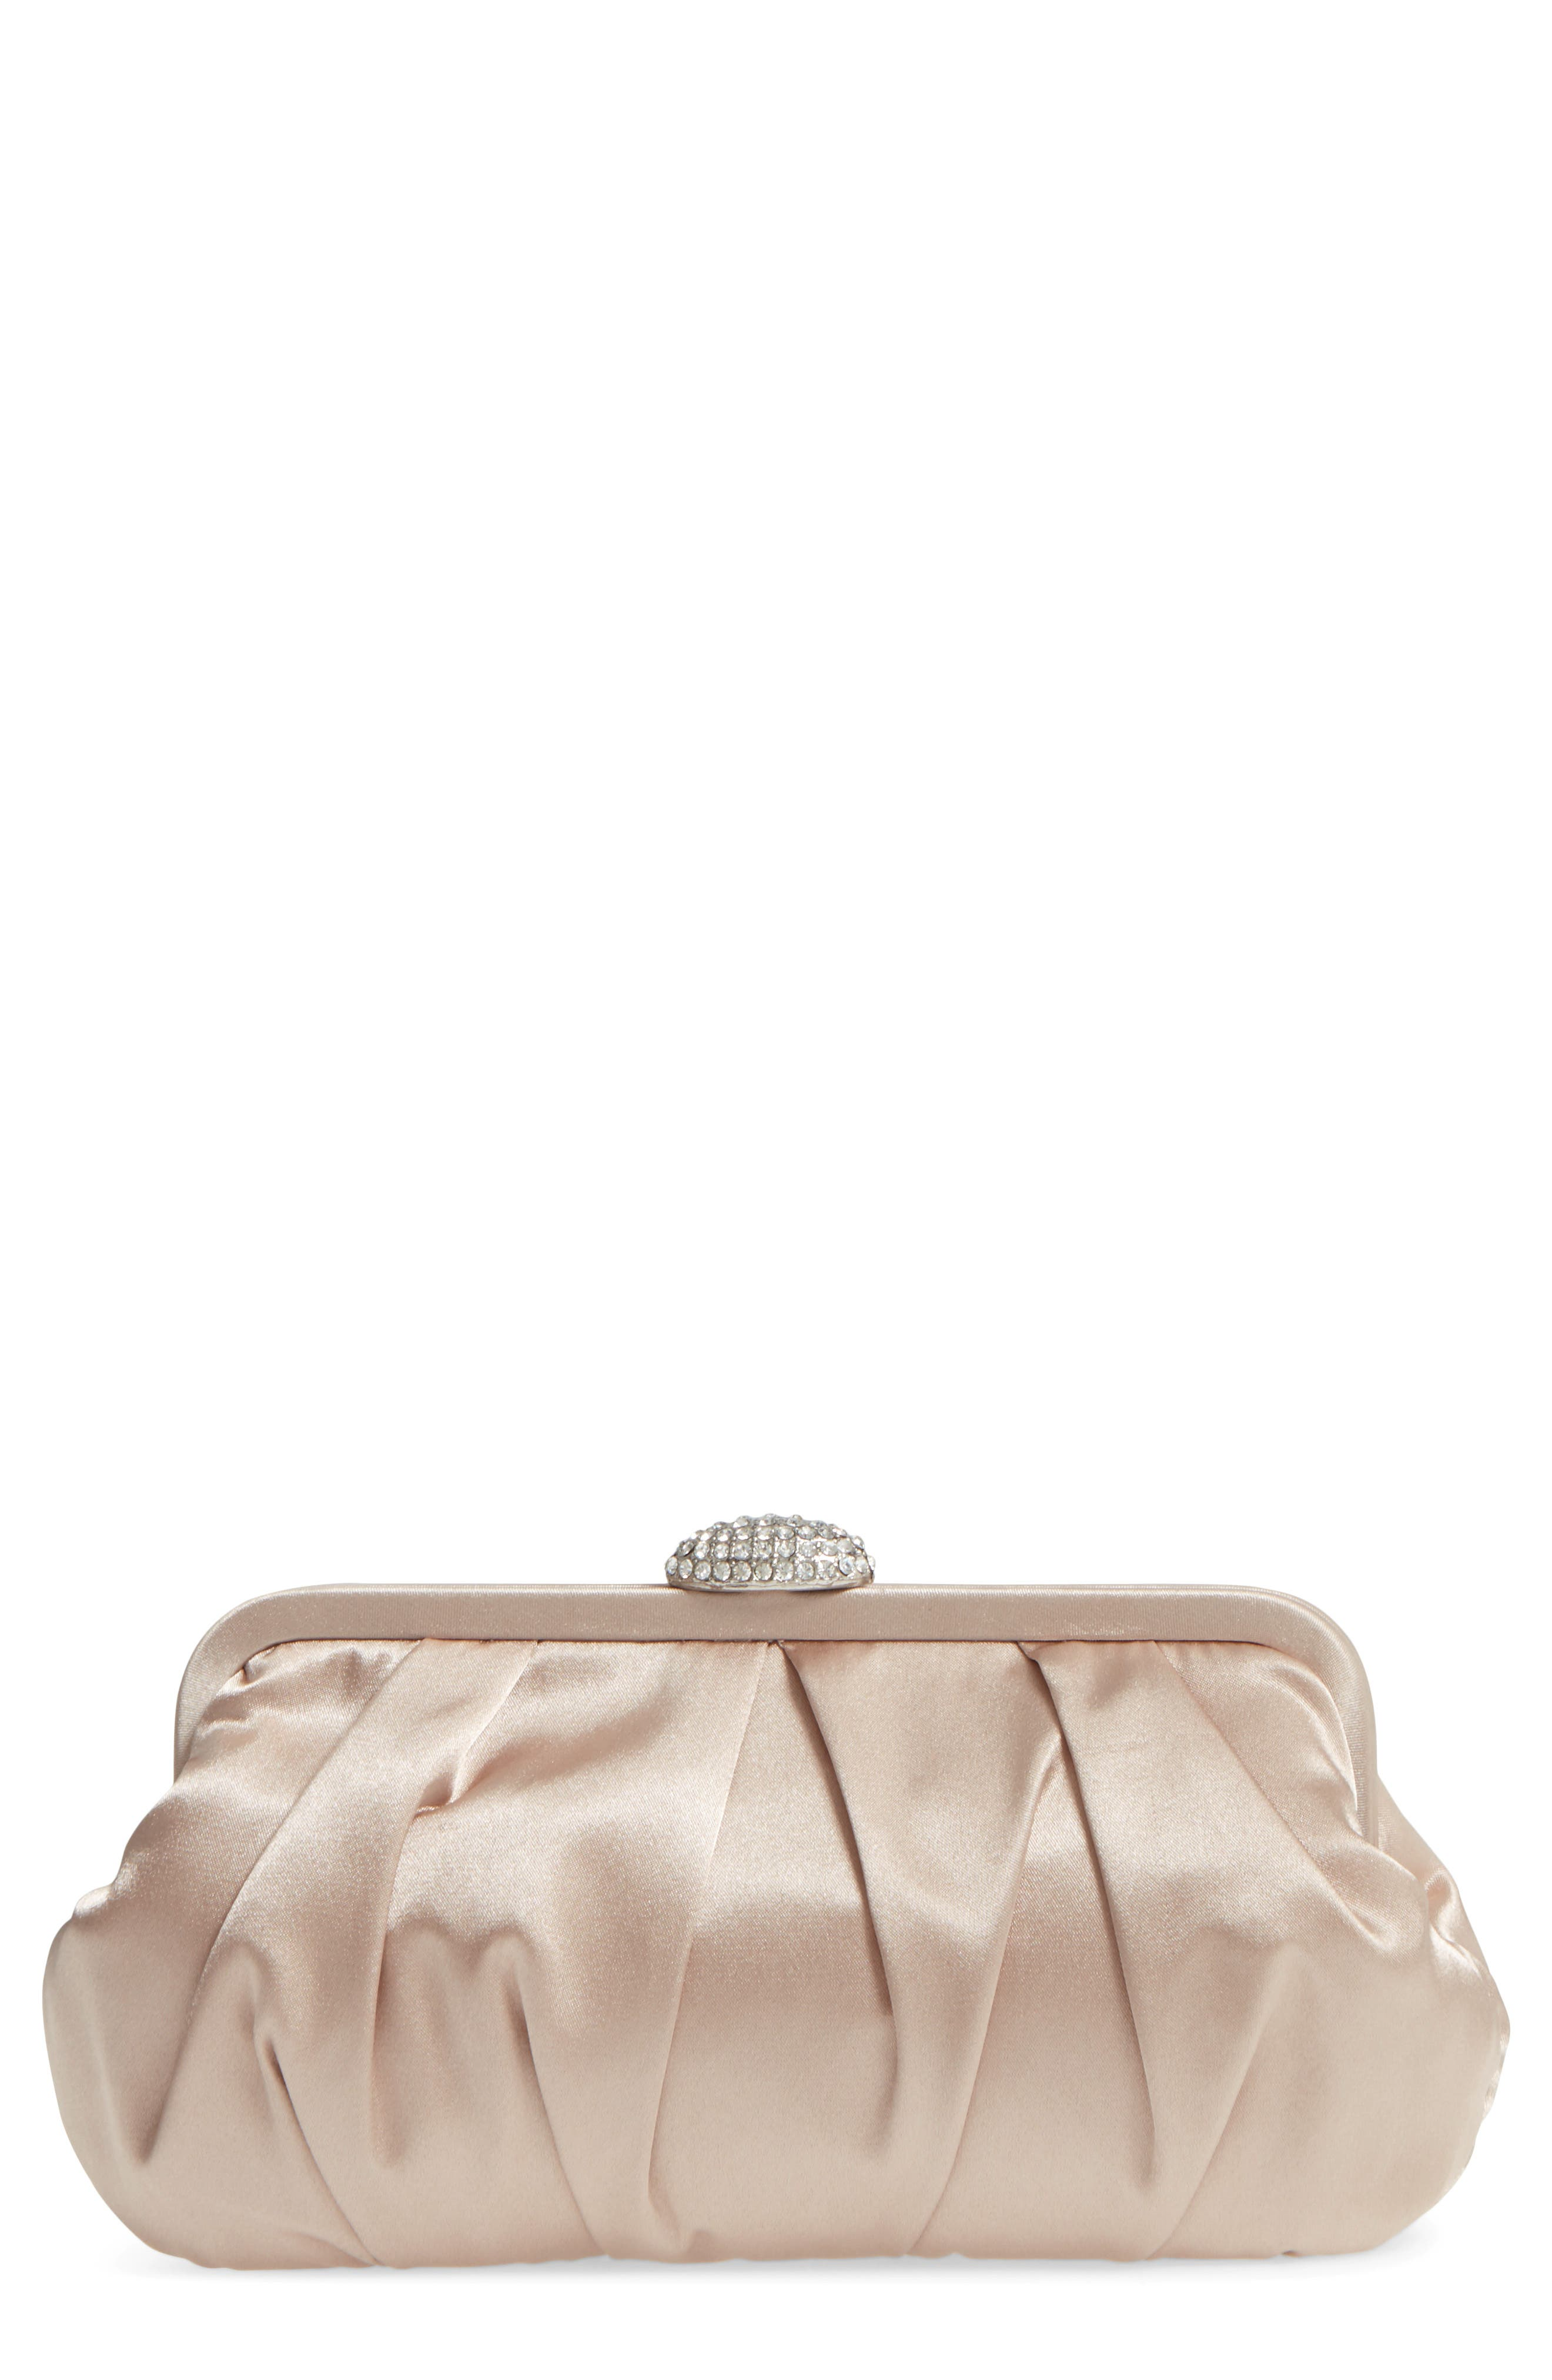 Concord Pleated Satin Frame Clutch,                         Main,                         color, Champagne